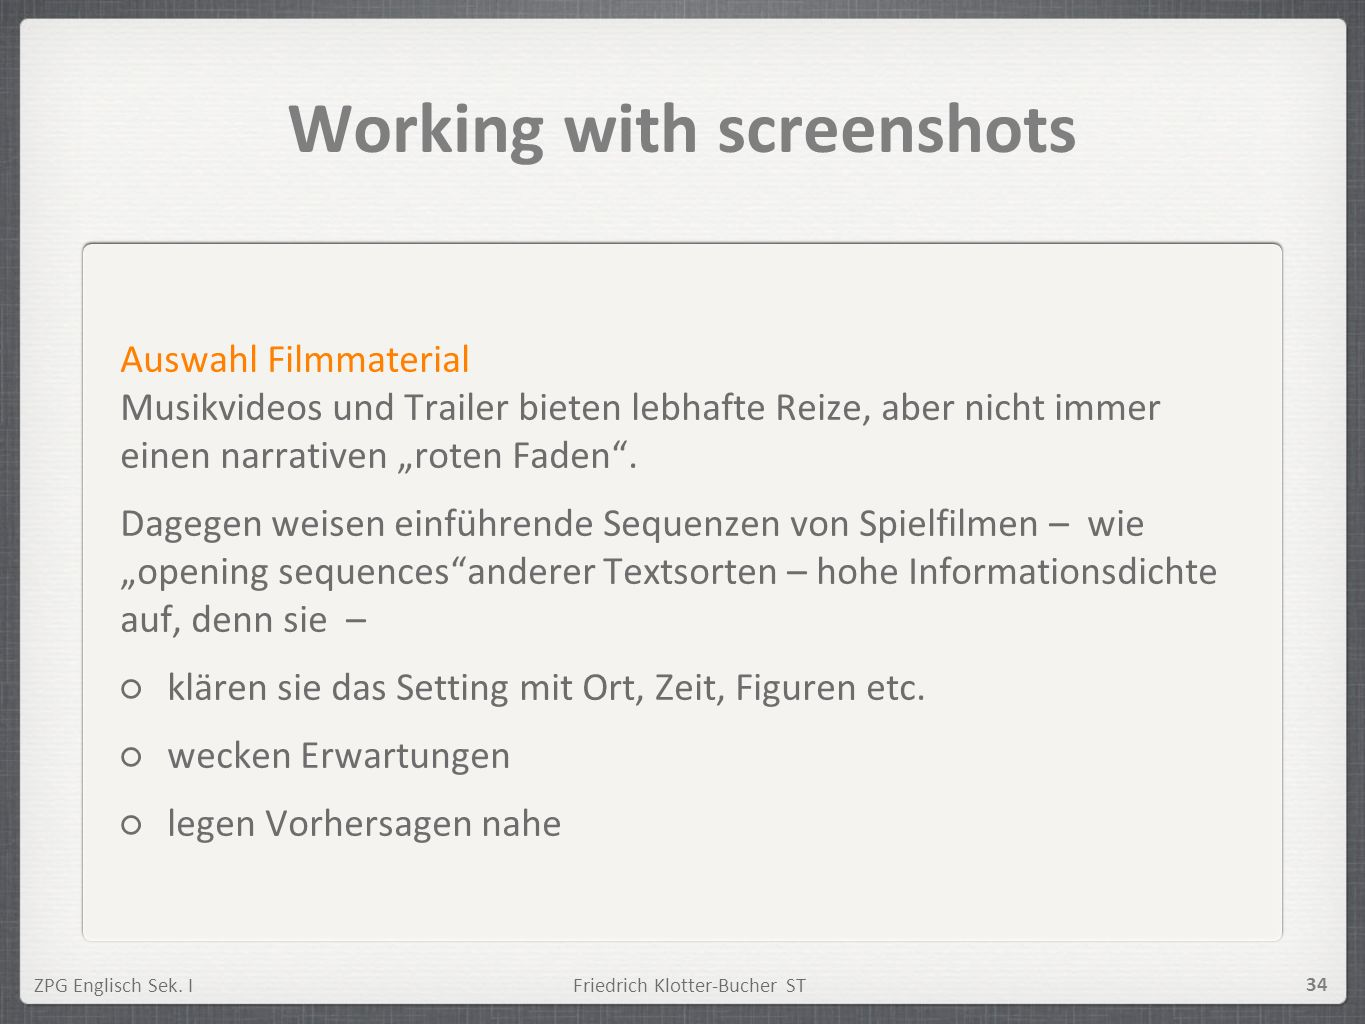 Working with screenshots